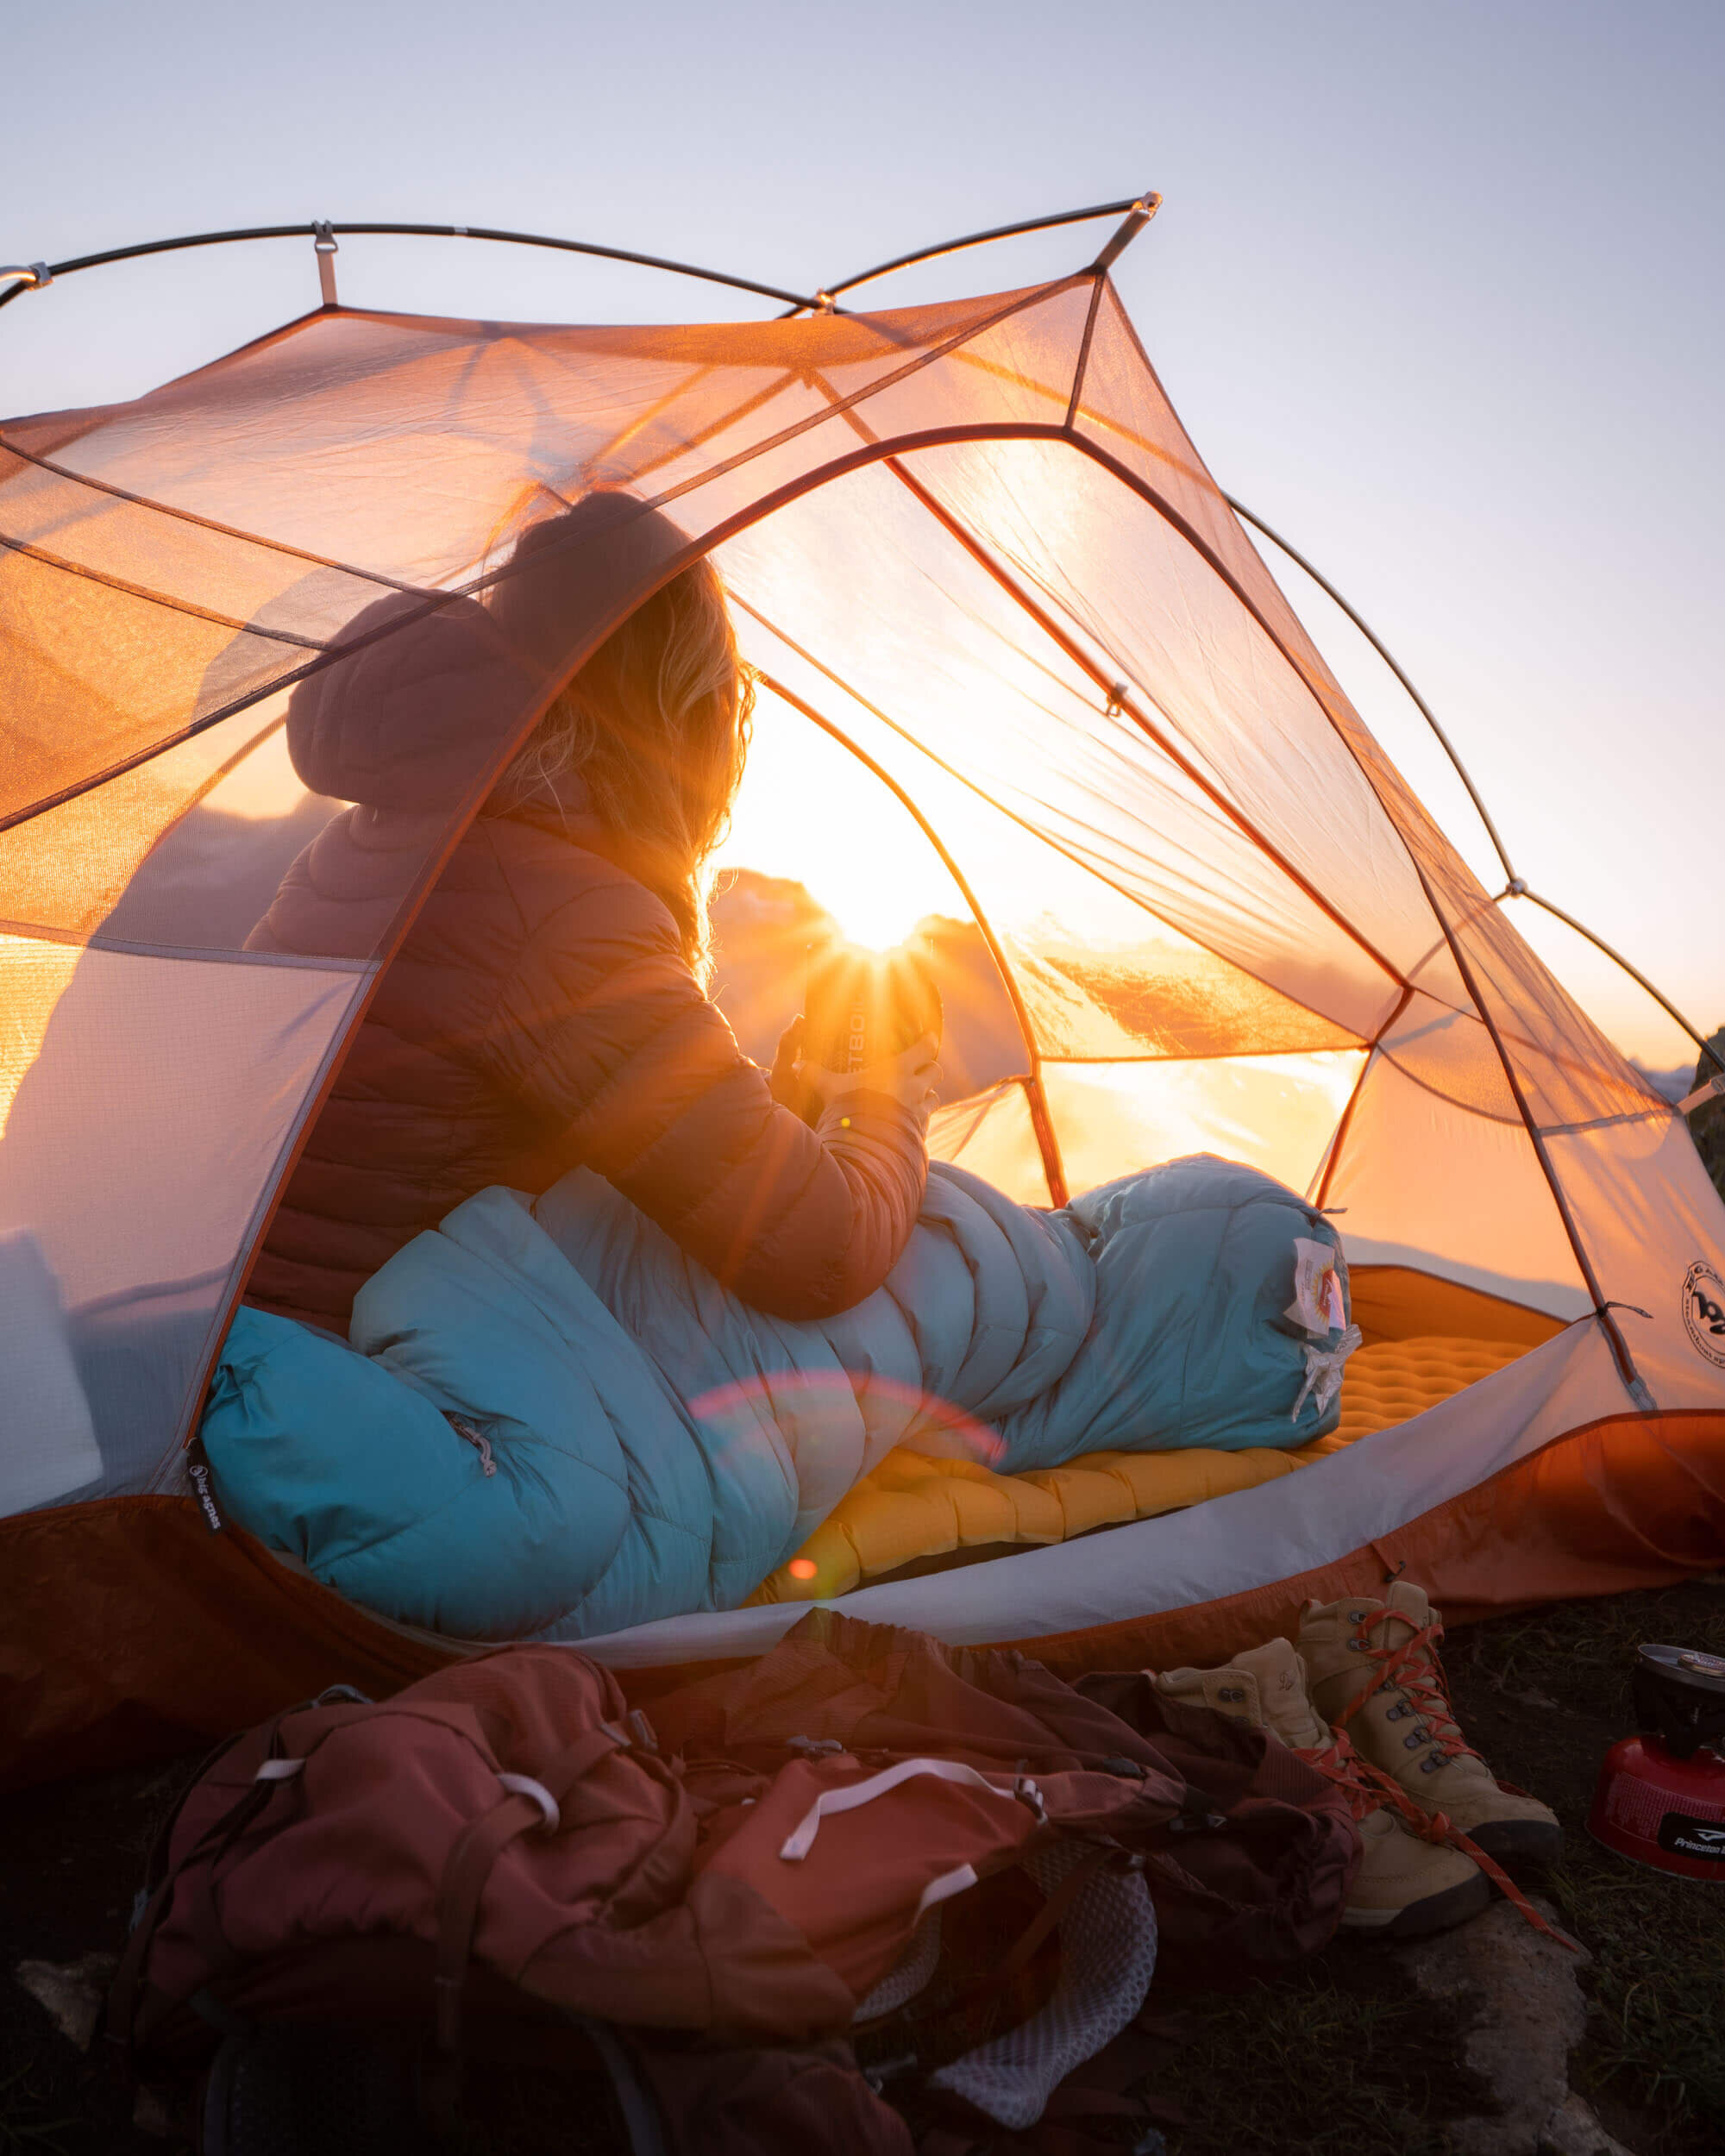 Waking up at sunrise in the North Cascades. Wearing:  Arc'teryx Cerium LT Hooded Down Jacket . Also shown:  Marmot Women's Xenon 15° Sleeping Bag ,  NEMO Sleeping Pad ,  Big Agnes Copper Spur HV UL 2P Tent .